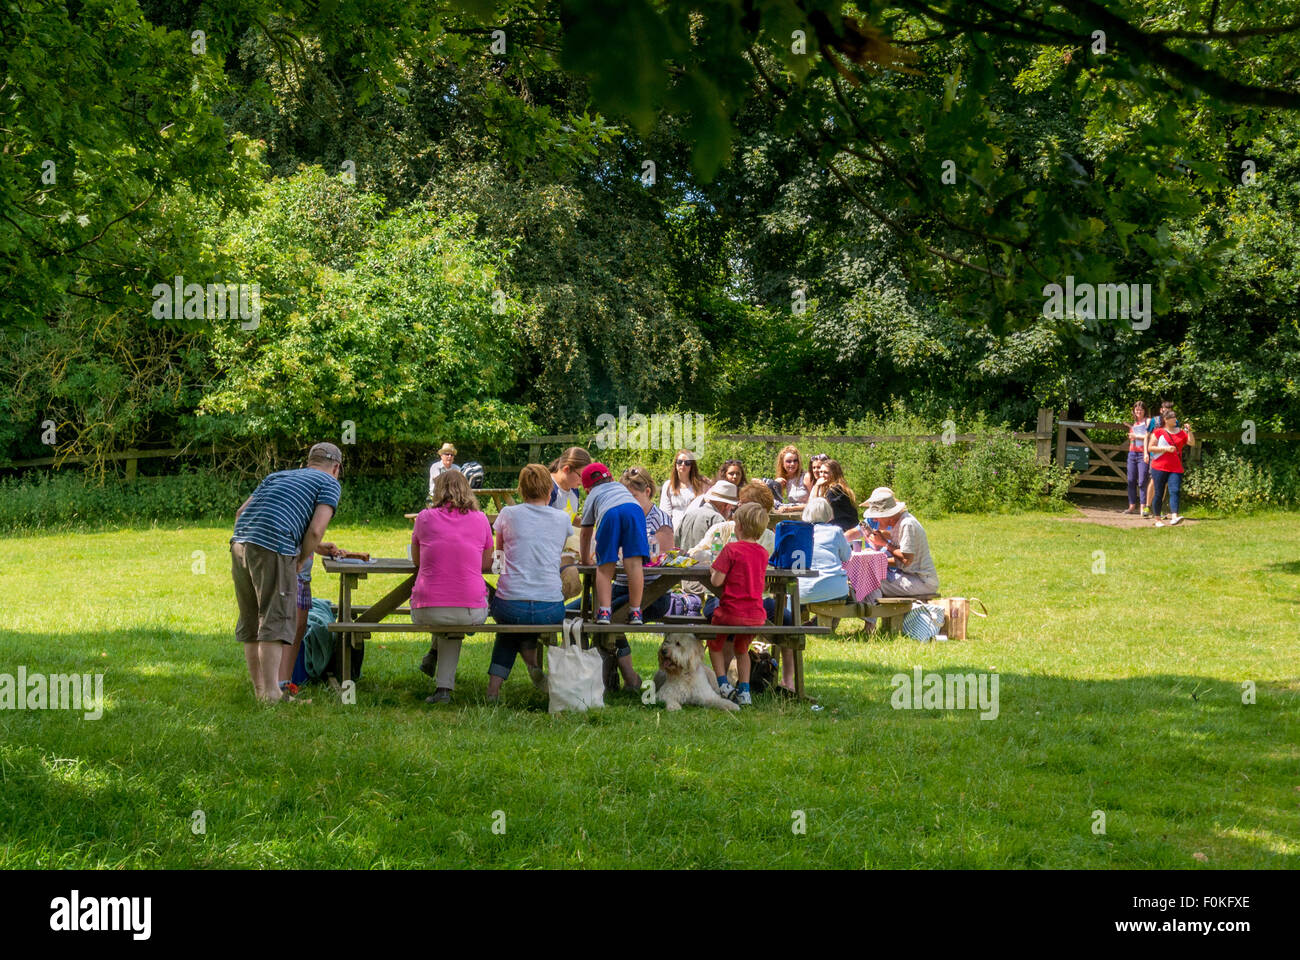 Families enjoying a picnic at the Yorkshire Sculpture Park. - Stock Image